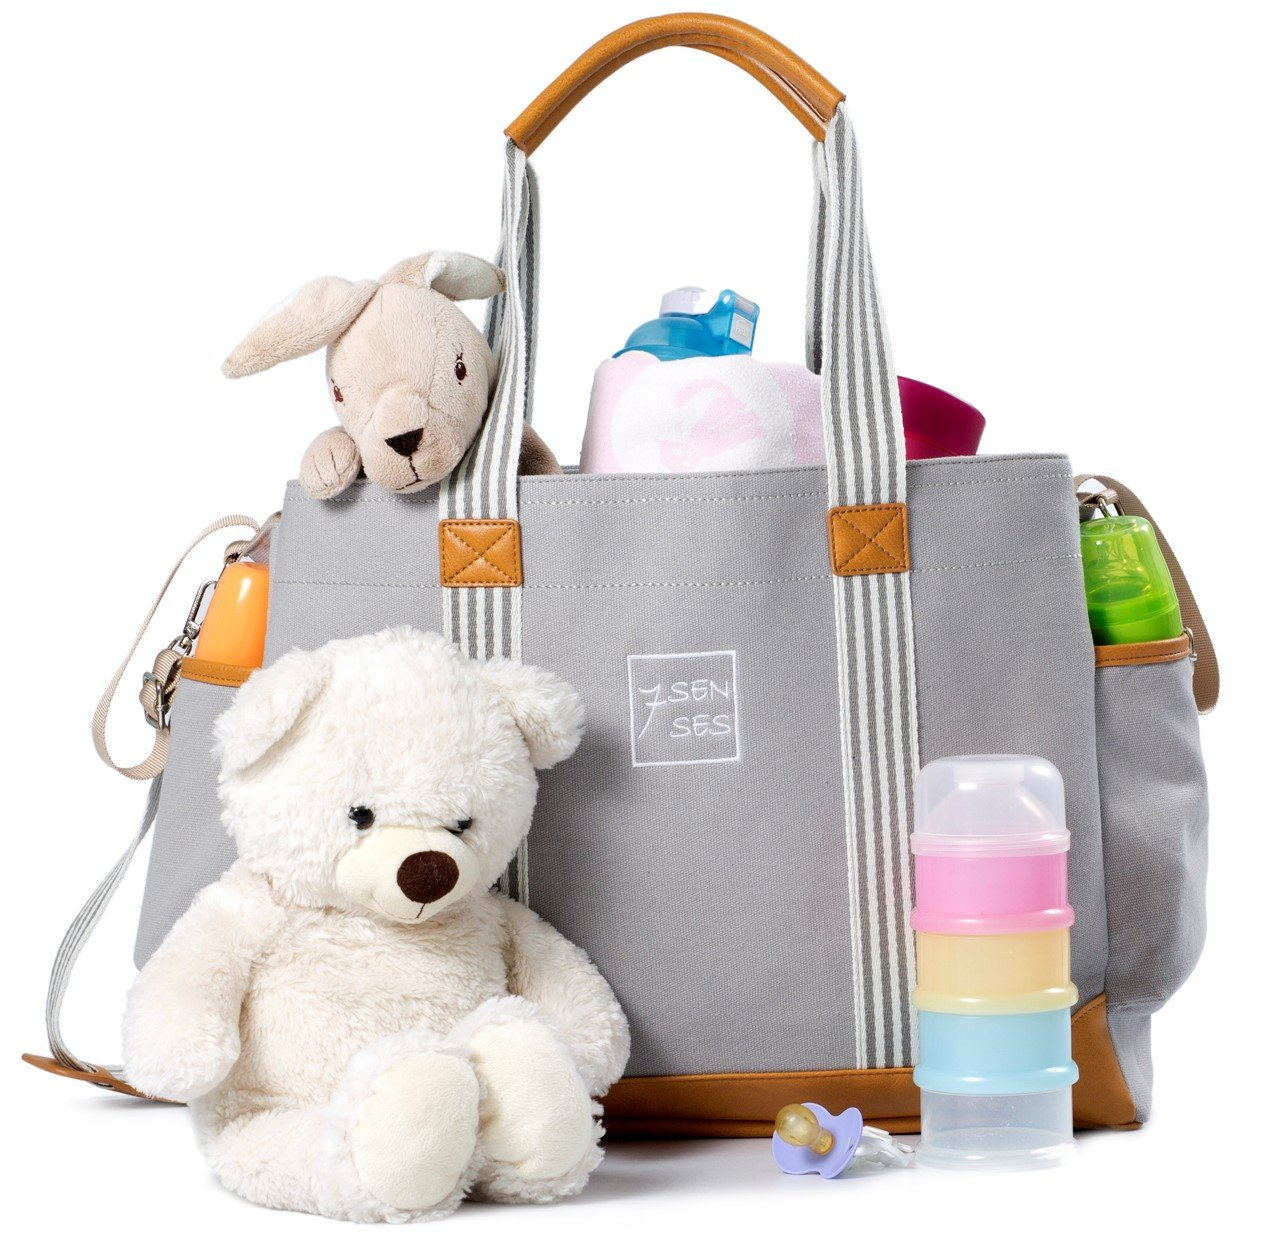 Diaper Bag for Girls and Boys - Large Capacity Baby Bag by 7Senses